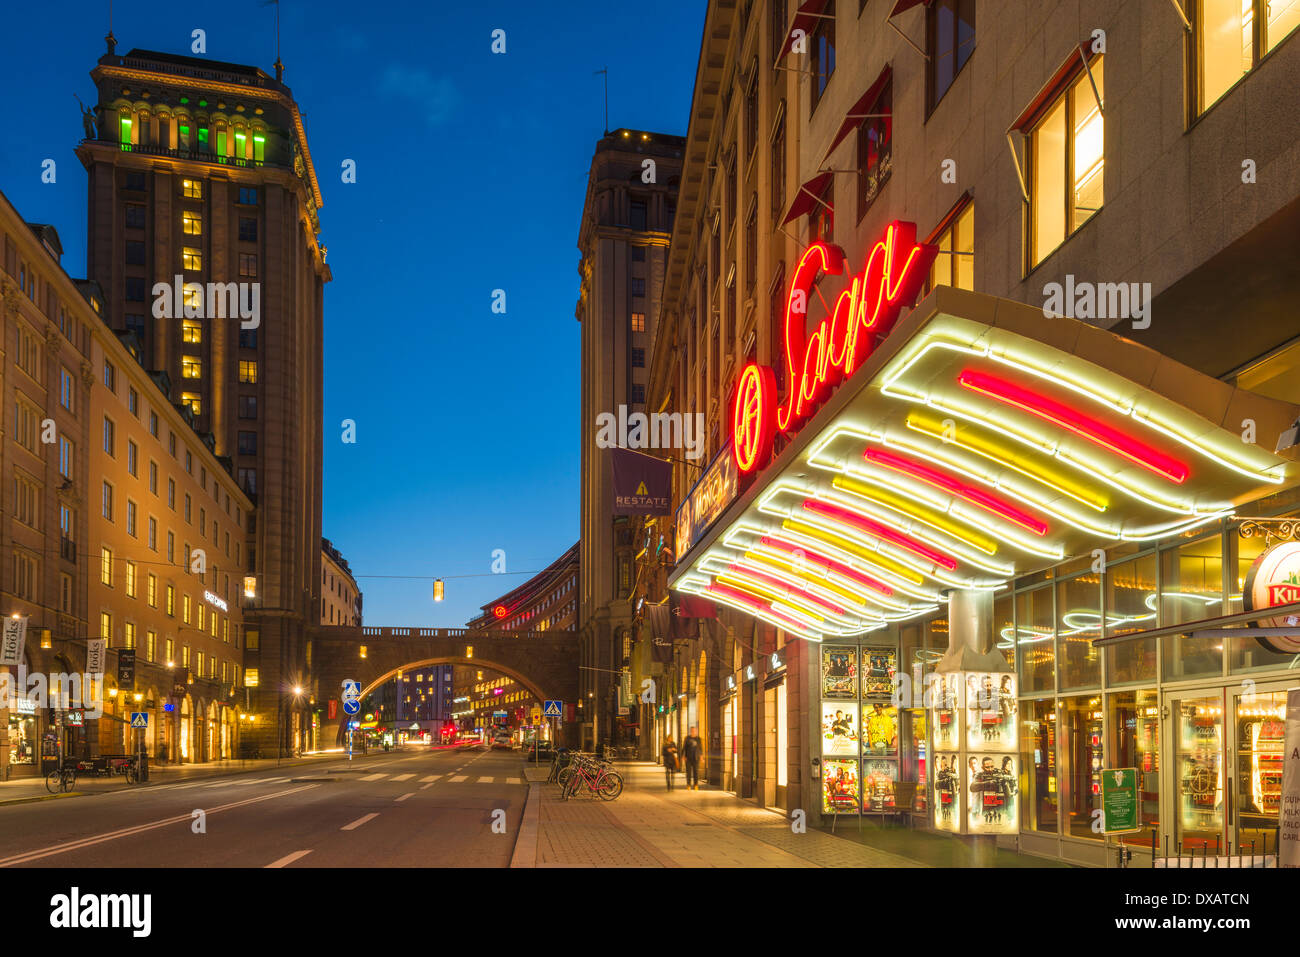 Evening view of Kungsgatan, a main street in central Stockholm.  To the right, is the Saga Cinema. - Stock Image